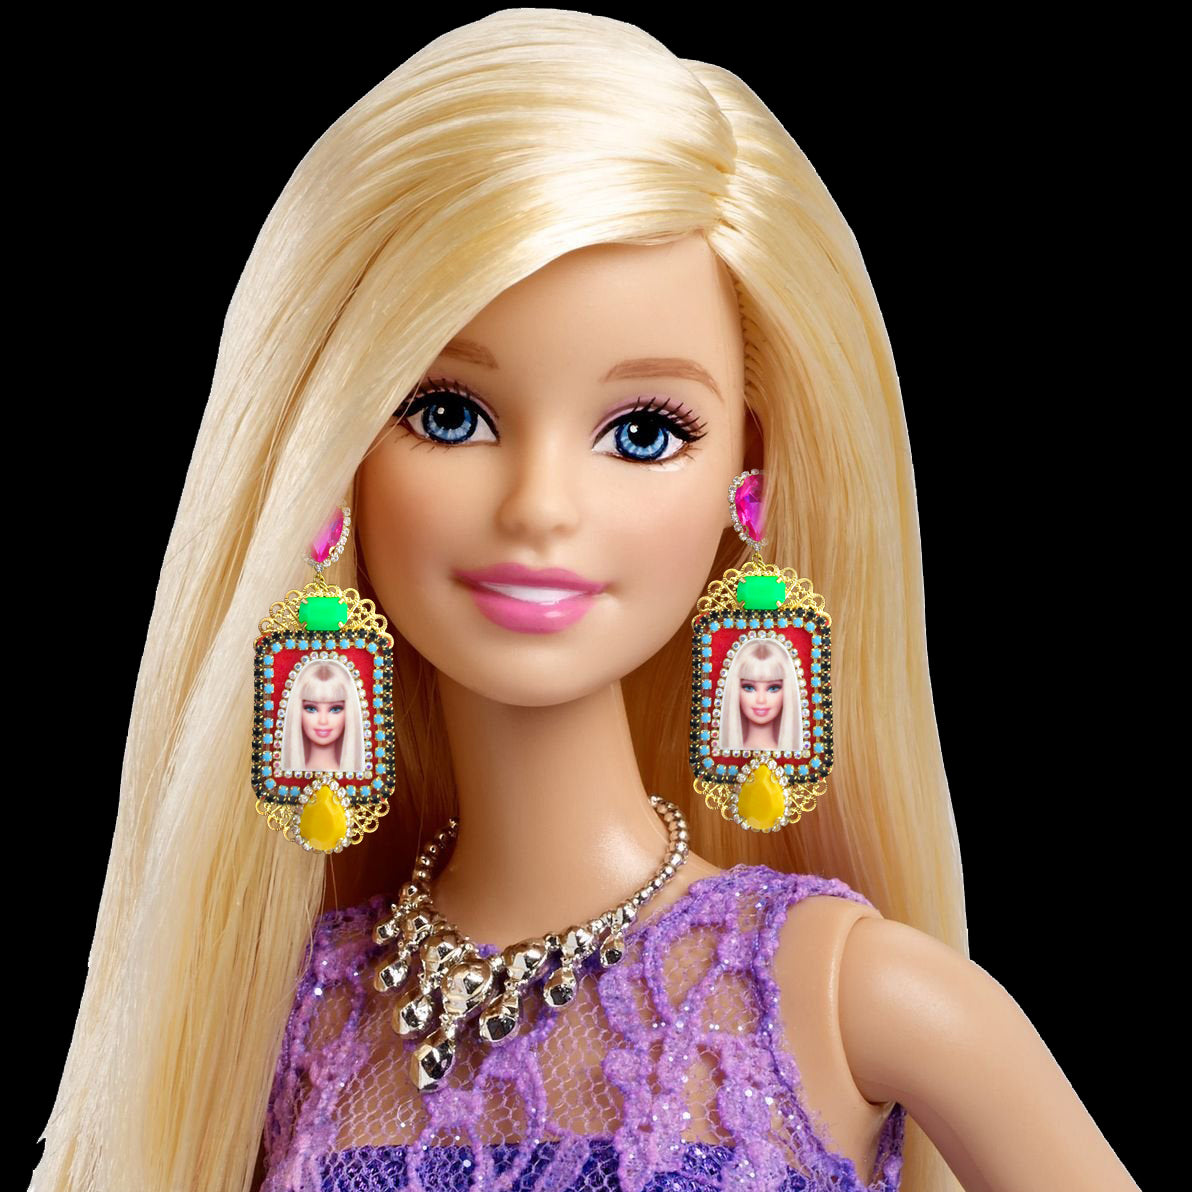 Mouchkine Jewelry Barbie chic and glamour earrings. Entirely handmade & made in France